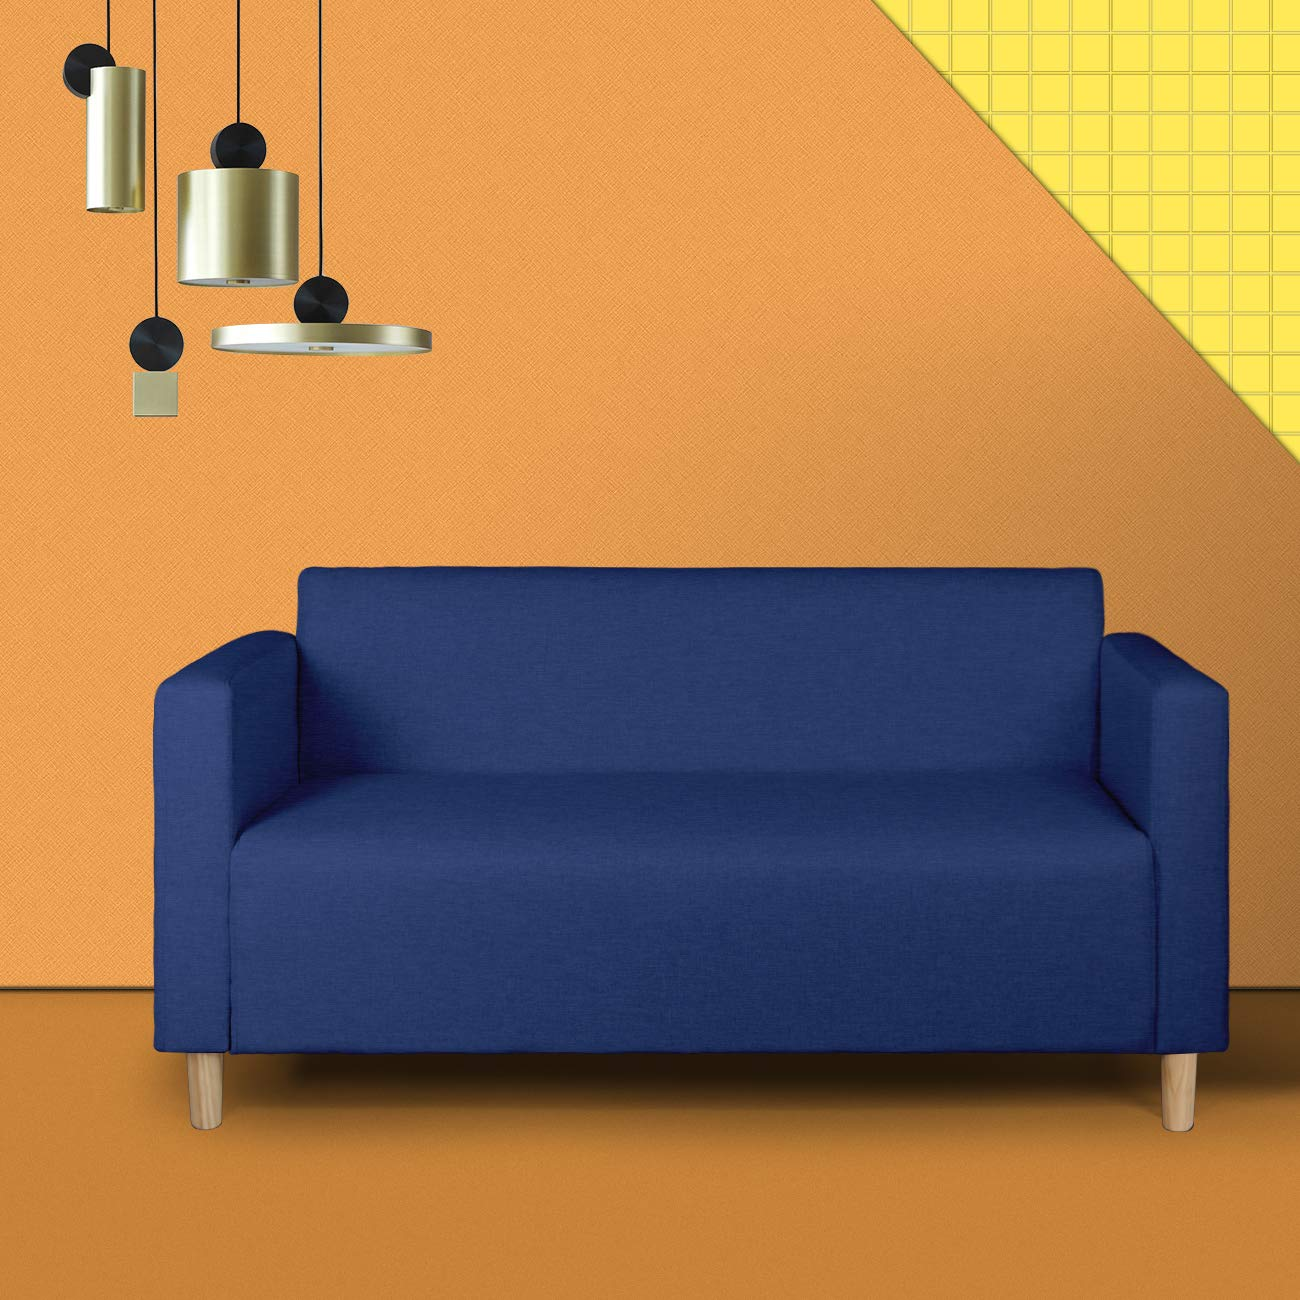 Marvelous Mid Century Modern Upholstered Fabric Loveseat Sofa Couch 2 Seat Loveseats Suitable For Small Spaces Dark Blue 2 Andrewgaddart Wooden Chair Designs For Living Room Andrewgaddartcom